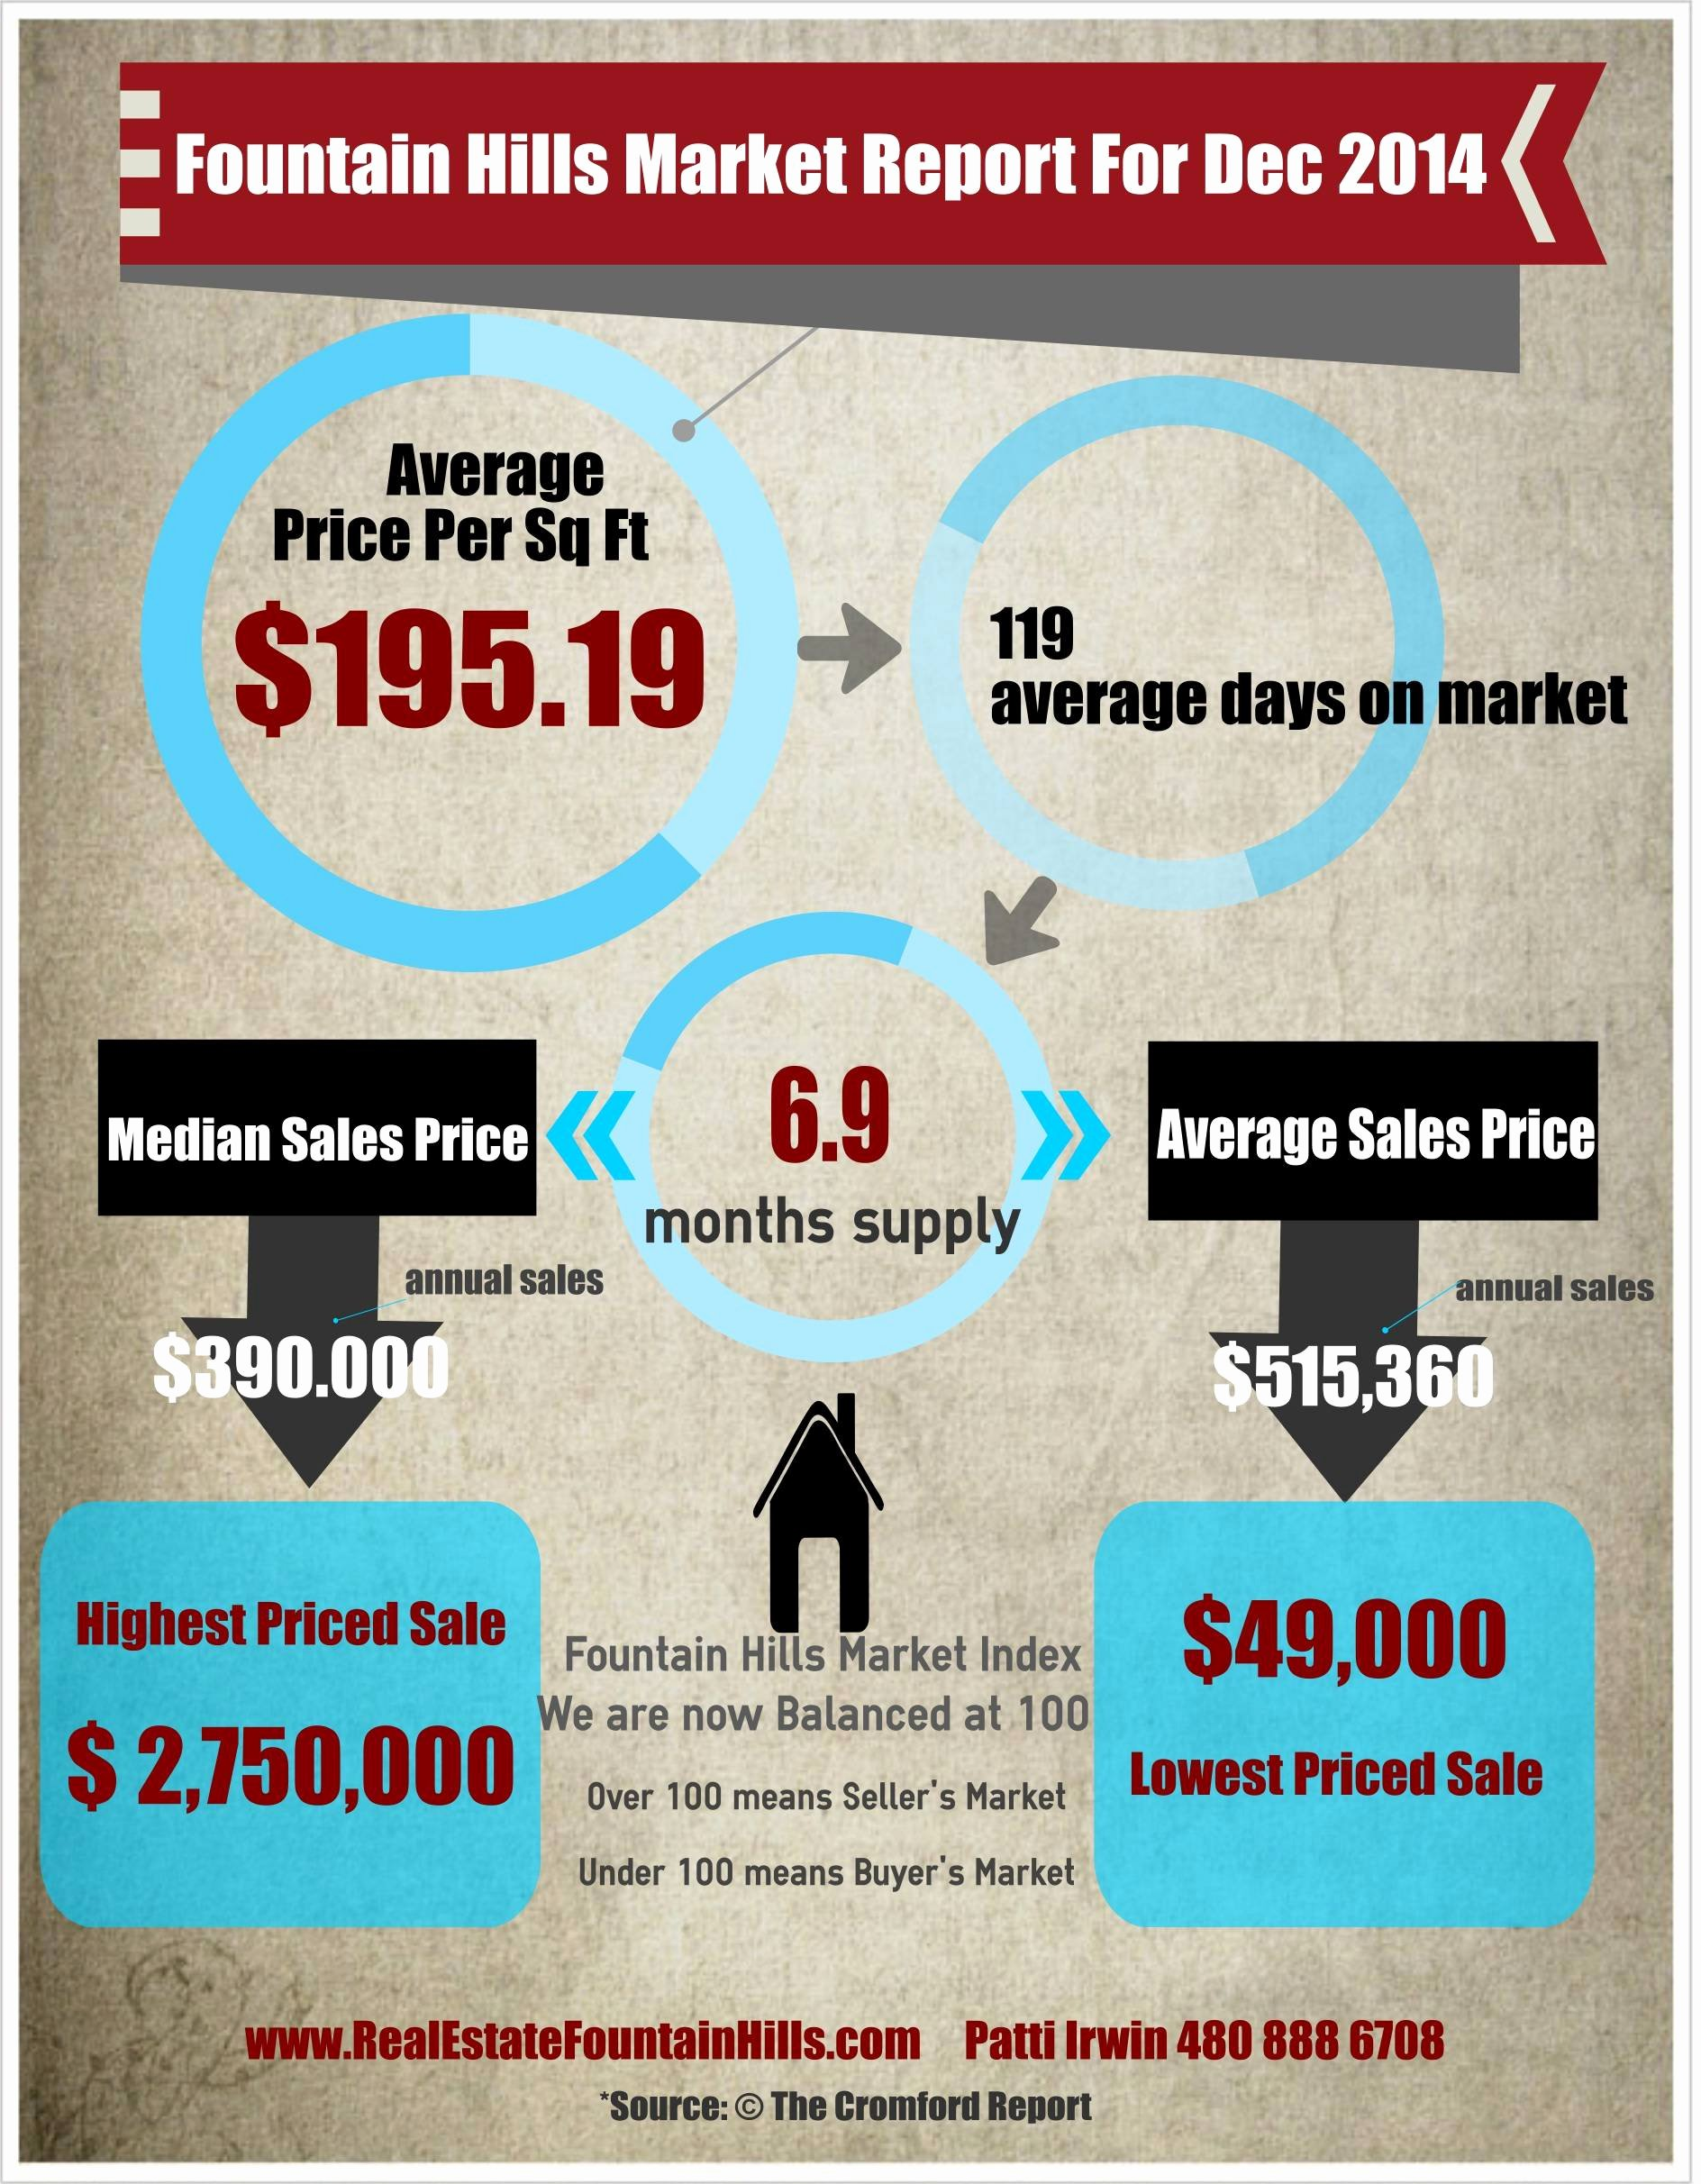 Real Estate Market Update Template Elegant Fountain Hills Real Estate Market Update